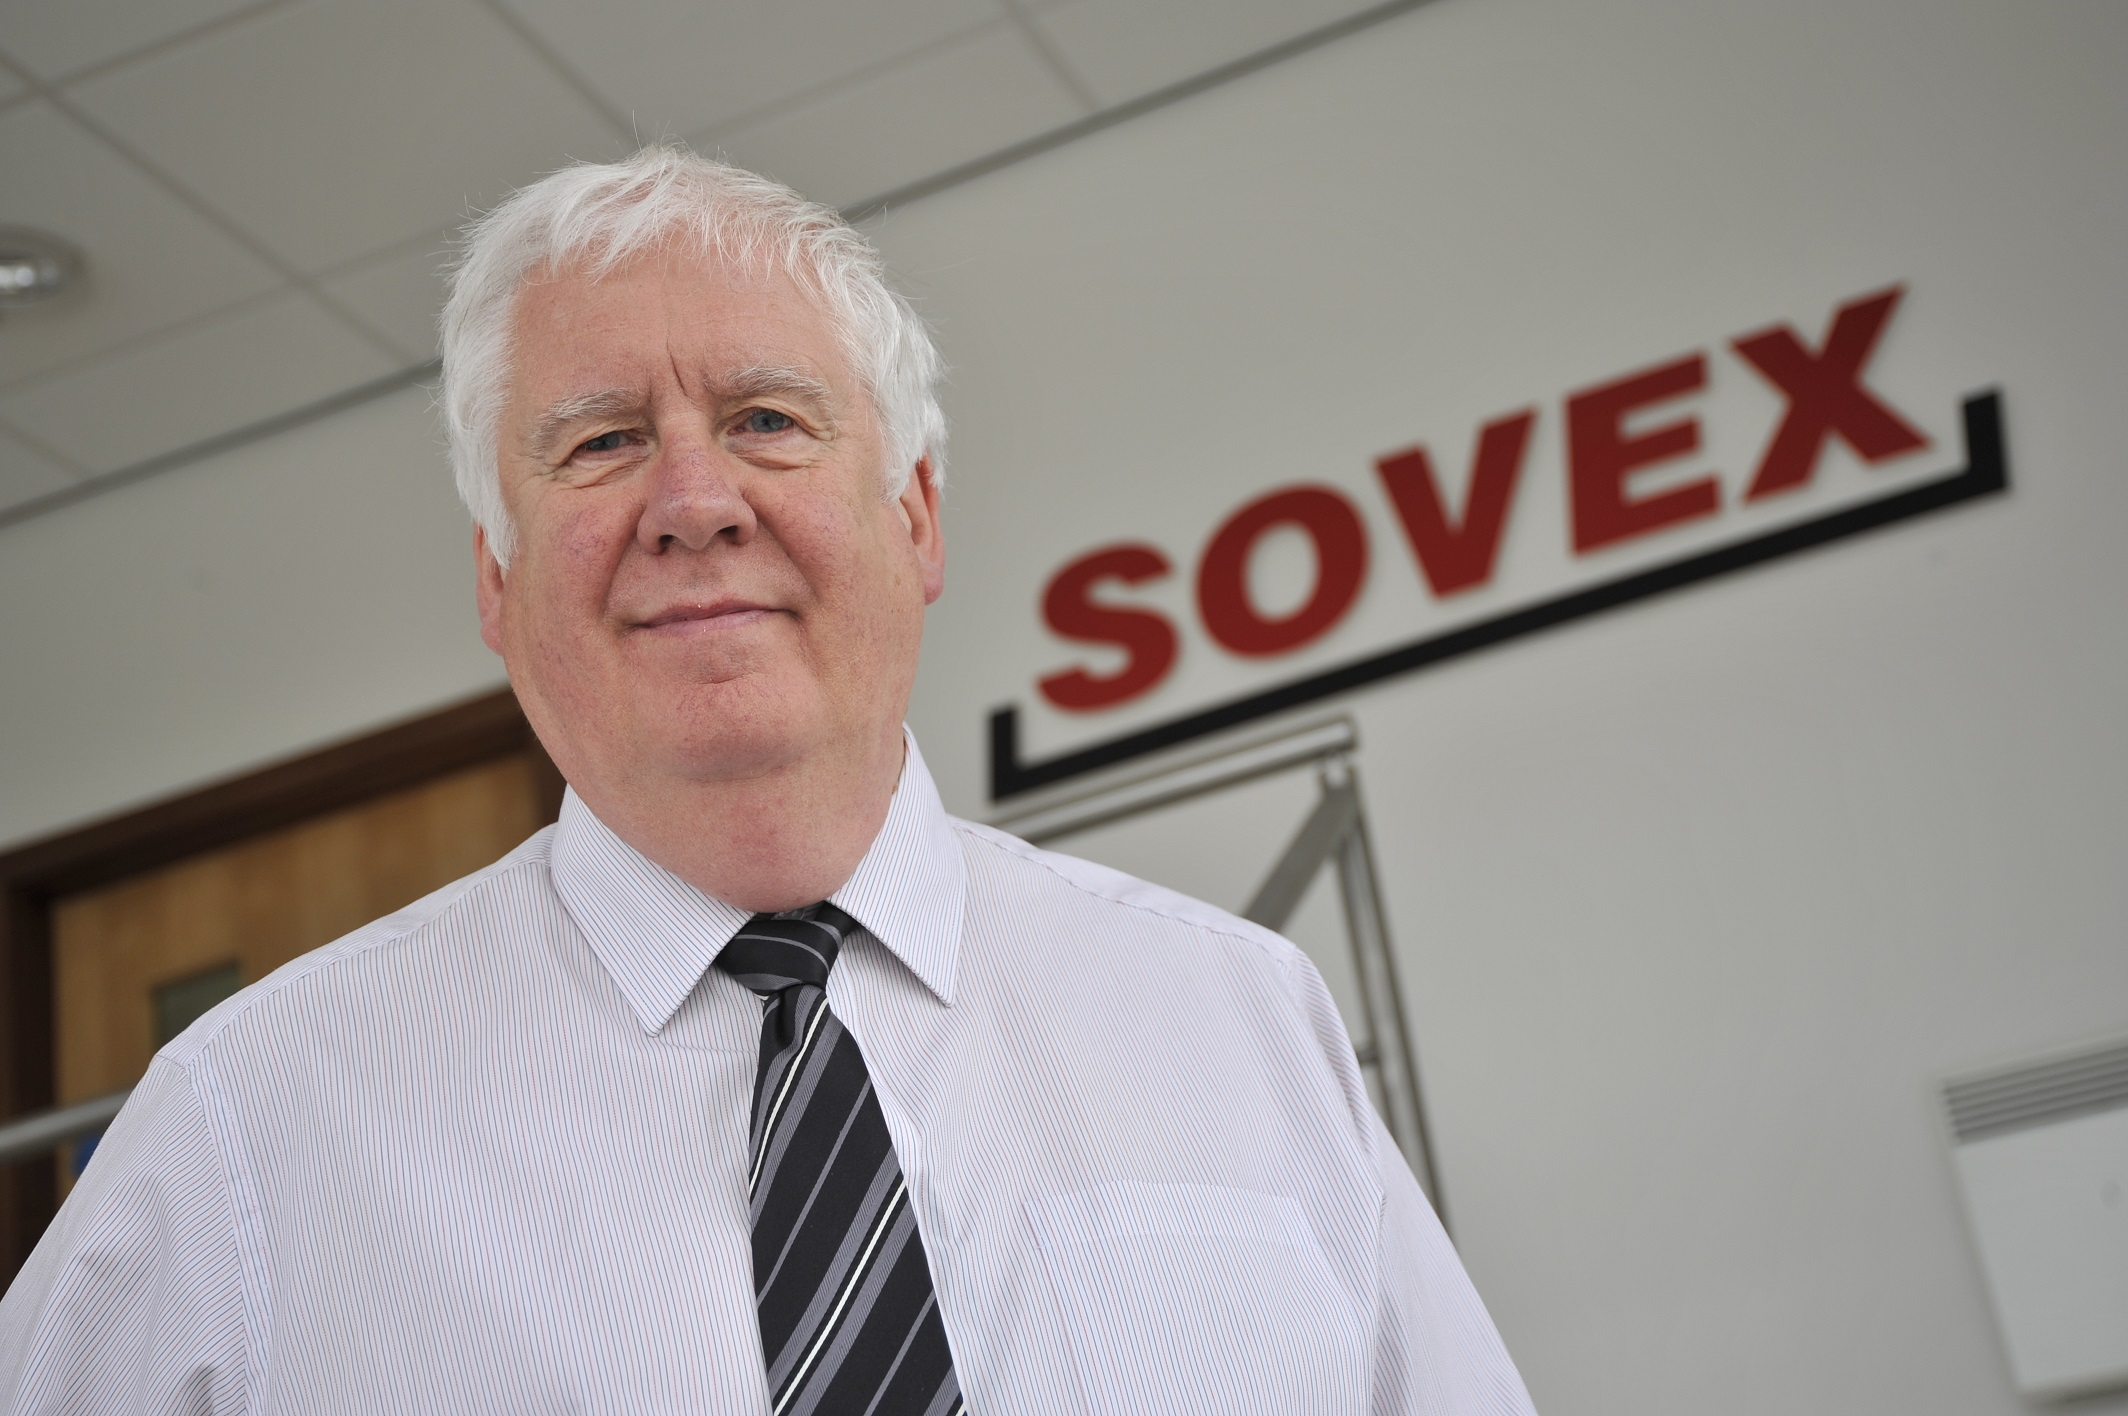 Sovex delivers multi-million pound project for new UK Mail hub